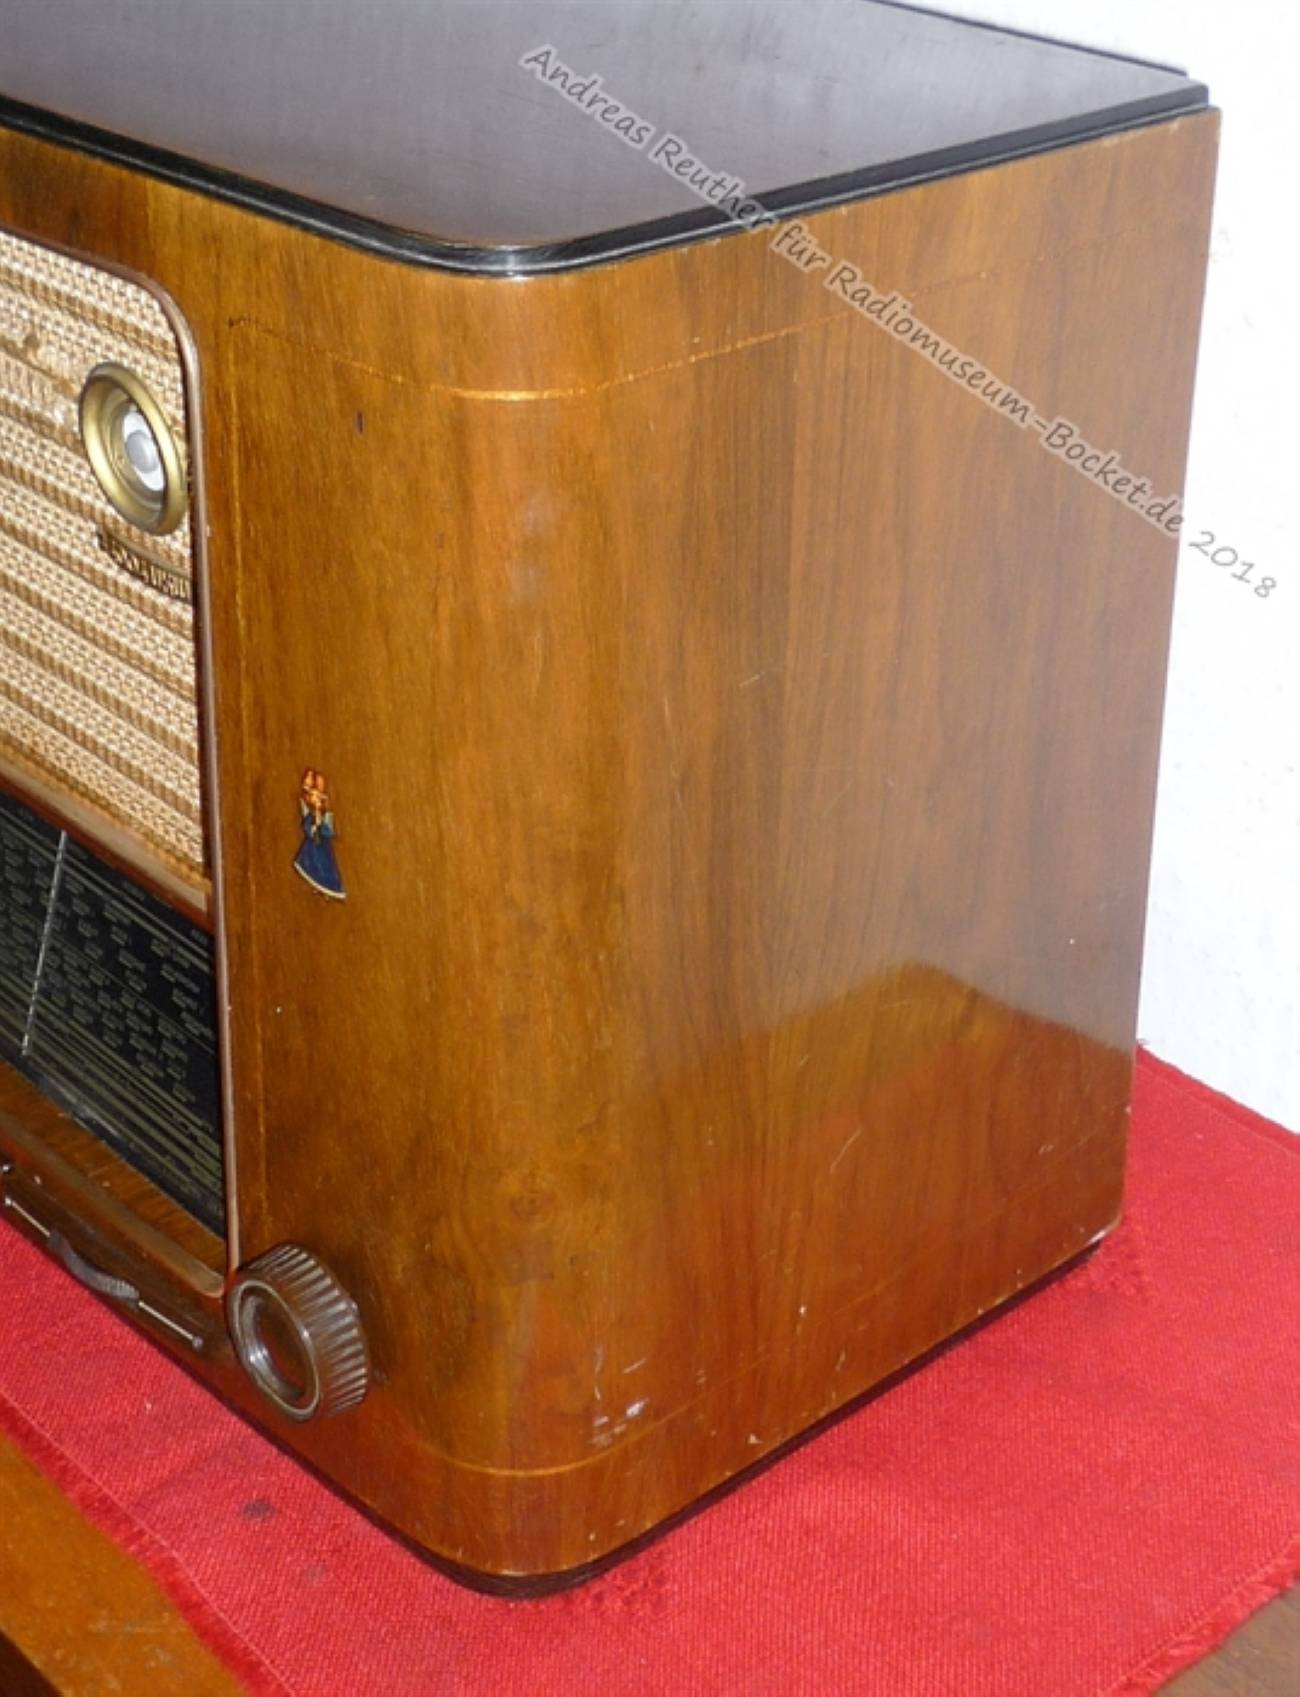 D 1952 Grundig 4004W Andreas Reuther 2018 (10).jpg